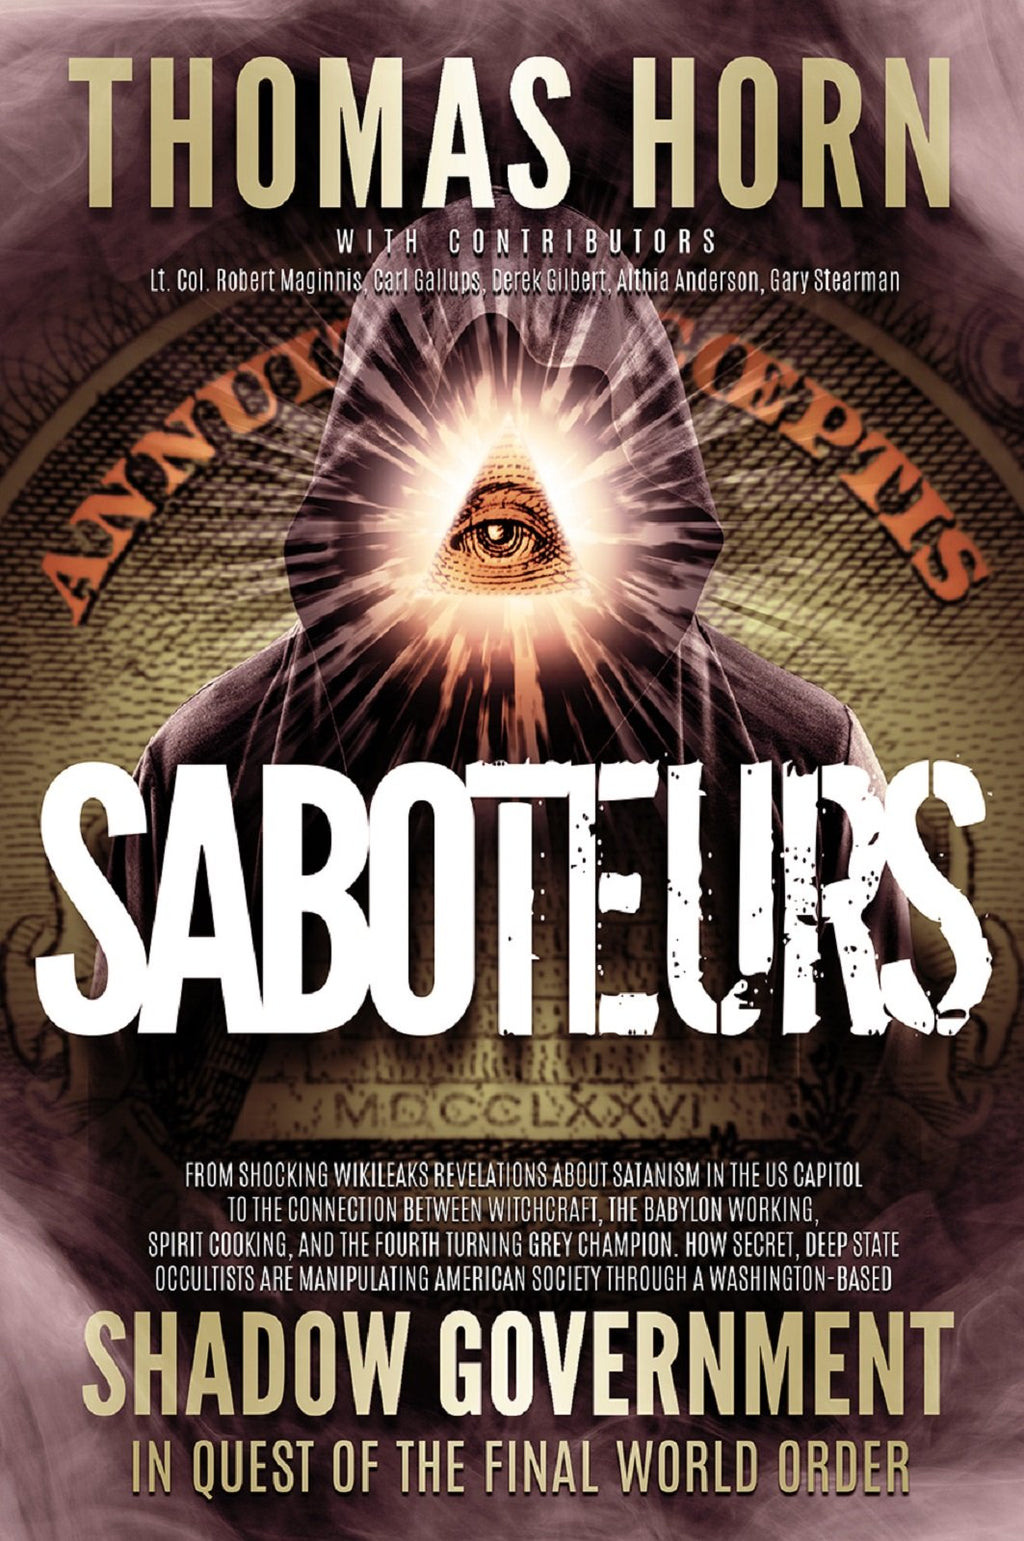 Full-Case of Saboteurs